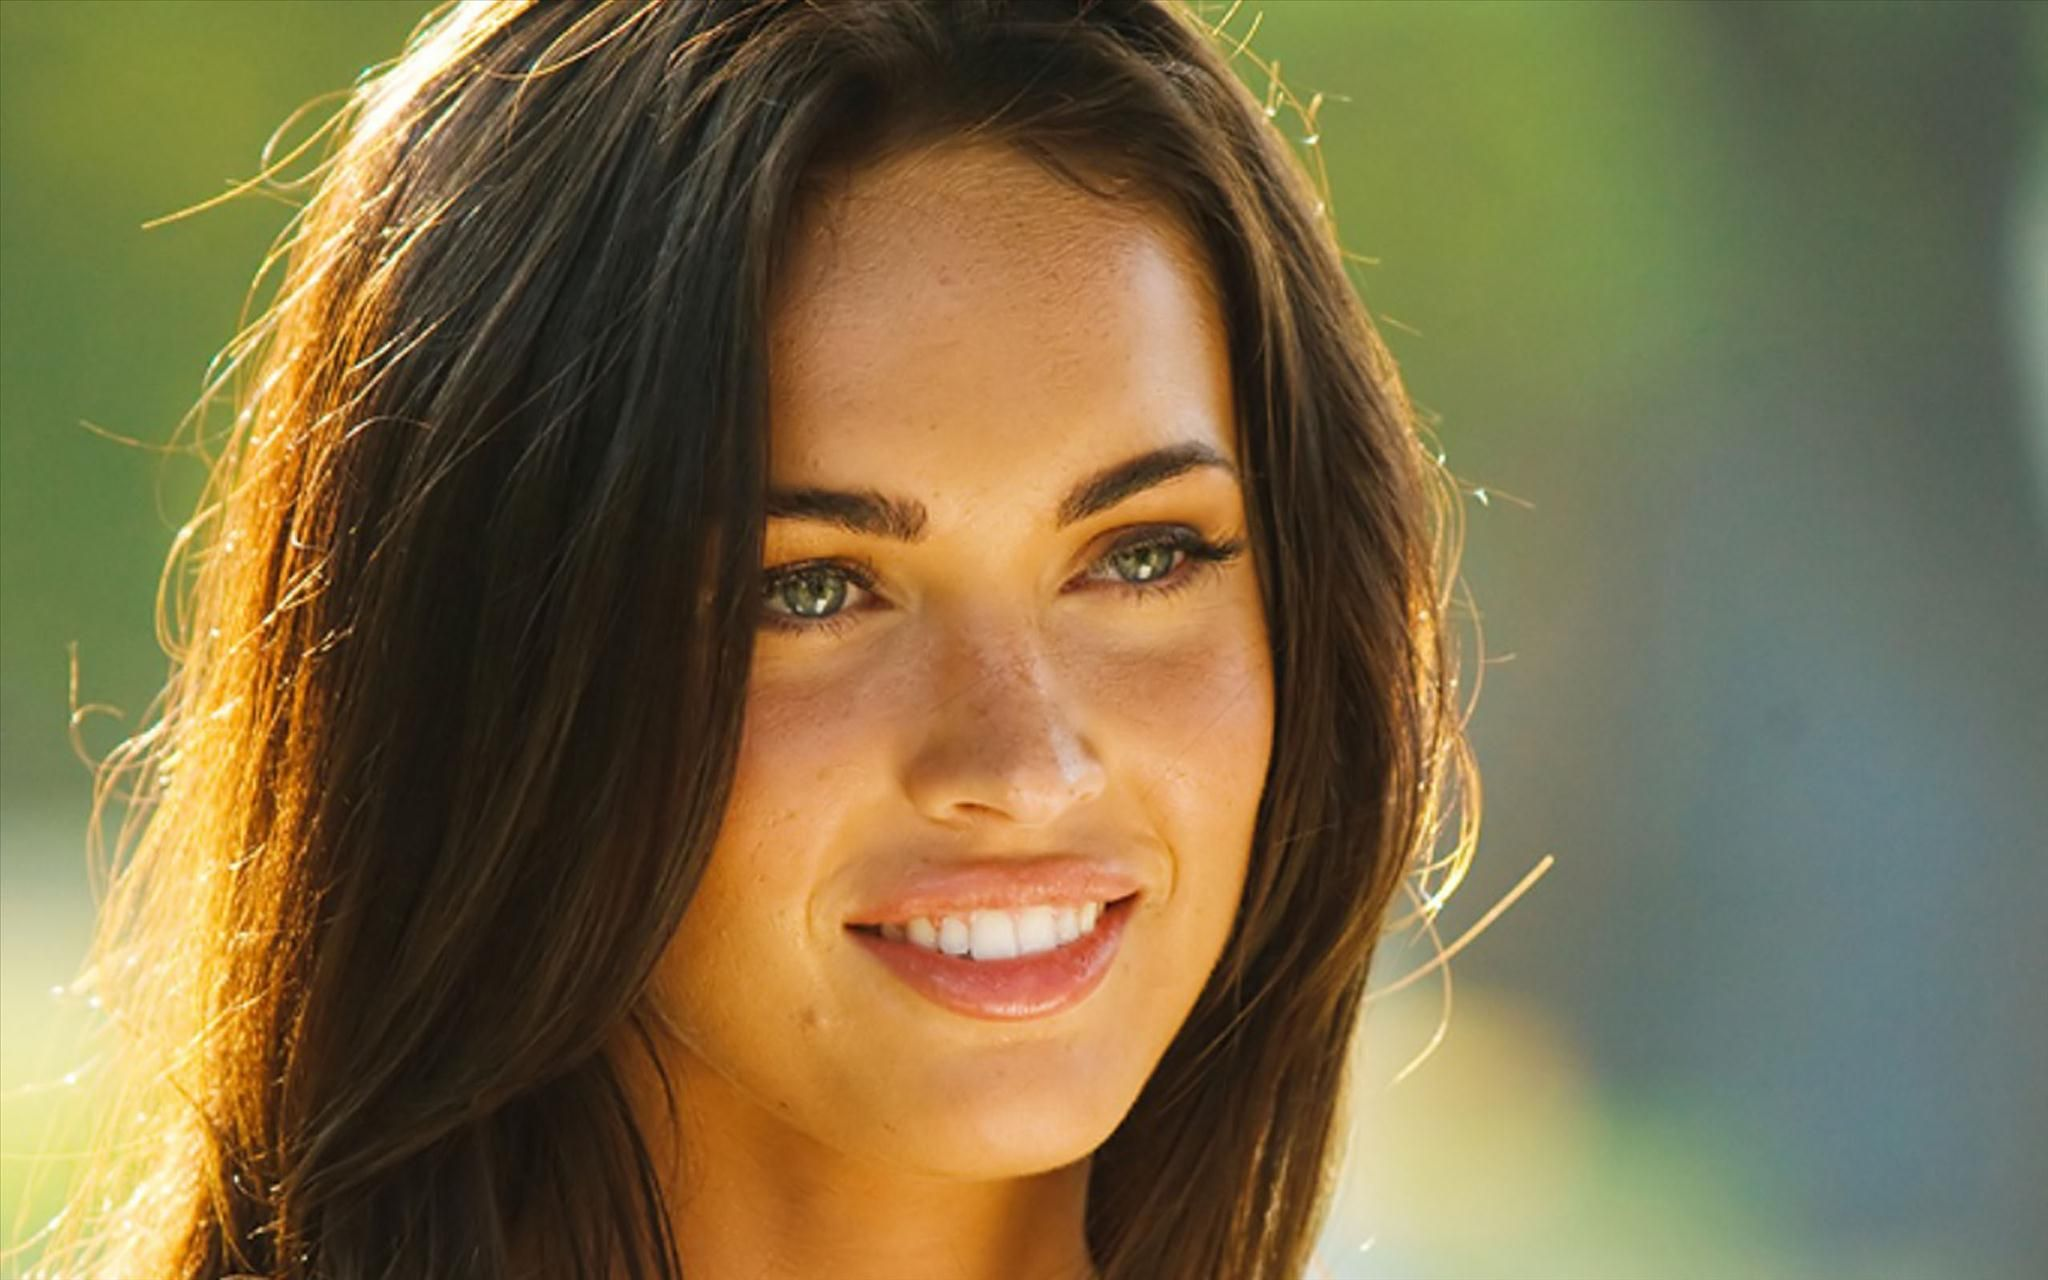 megan fox обоиmegan fox 2016, megan fox 2017, megan fox фото, megan fox insta, megan fox films, megan fox transformers, megan fox wikipedia, megan fox фильмы, megan fox tattoo, megan fox face текст, megan fox makeup, megan fox wiki, megan fox рост, megan fox биография, megan fox young, megan fox armani, megan fox обои, megan fox interview, megan fox rost, megan fox husband